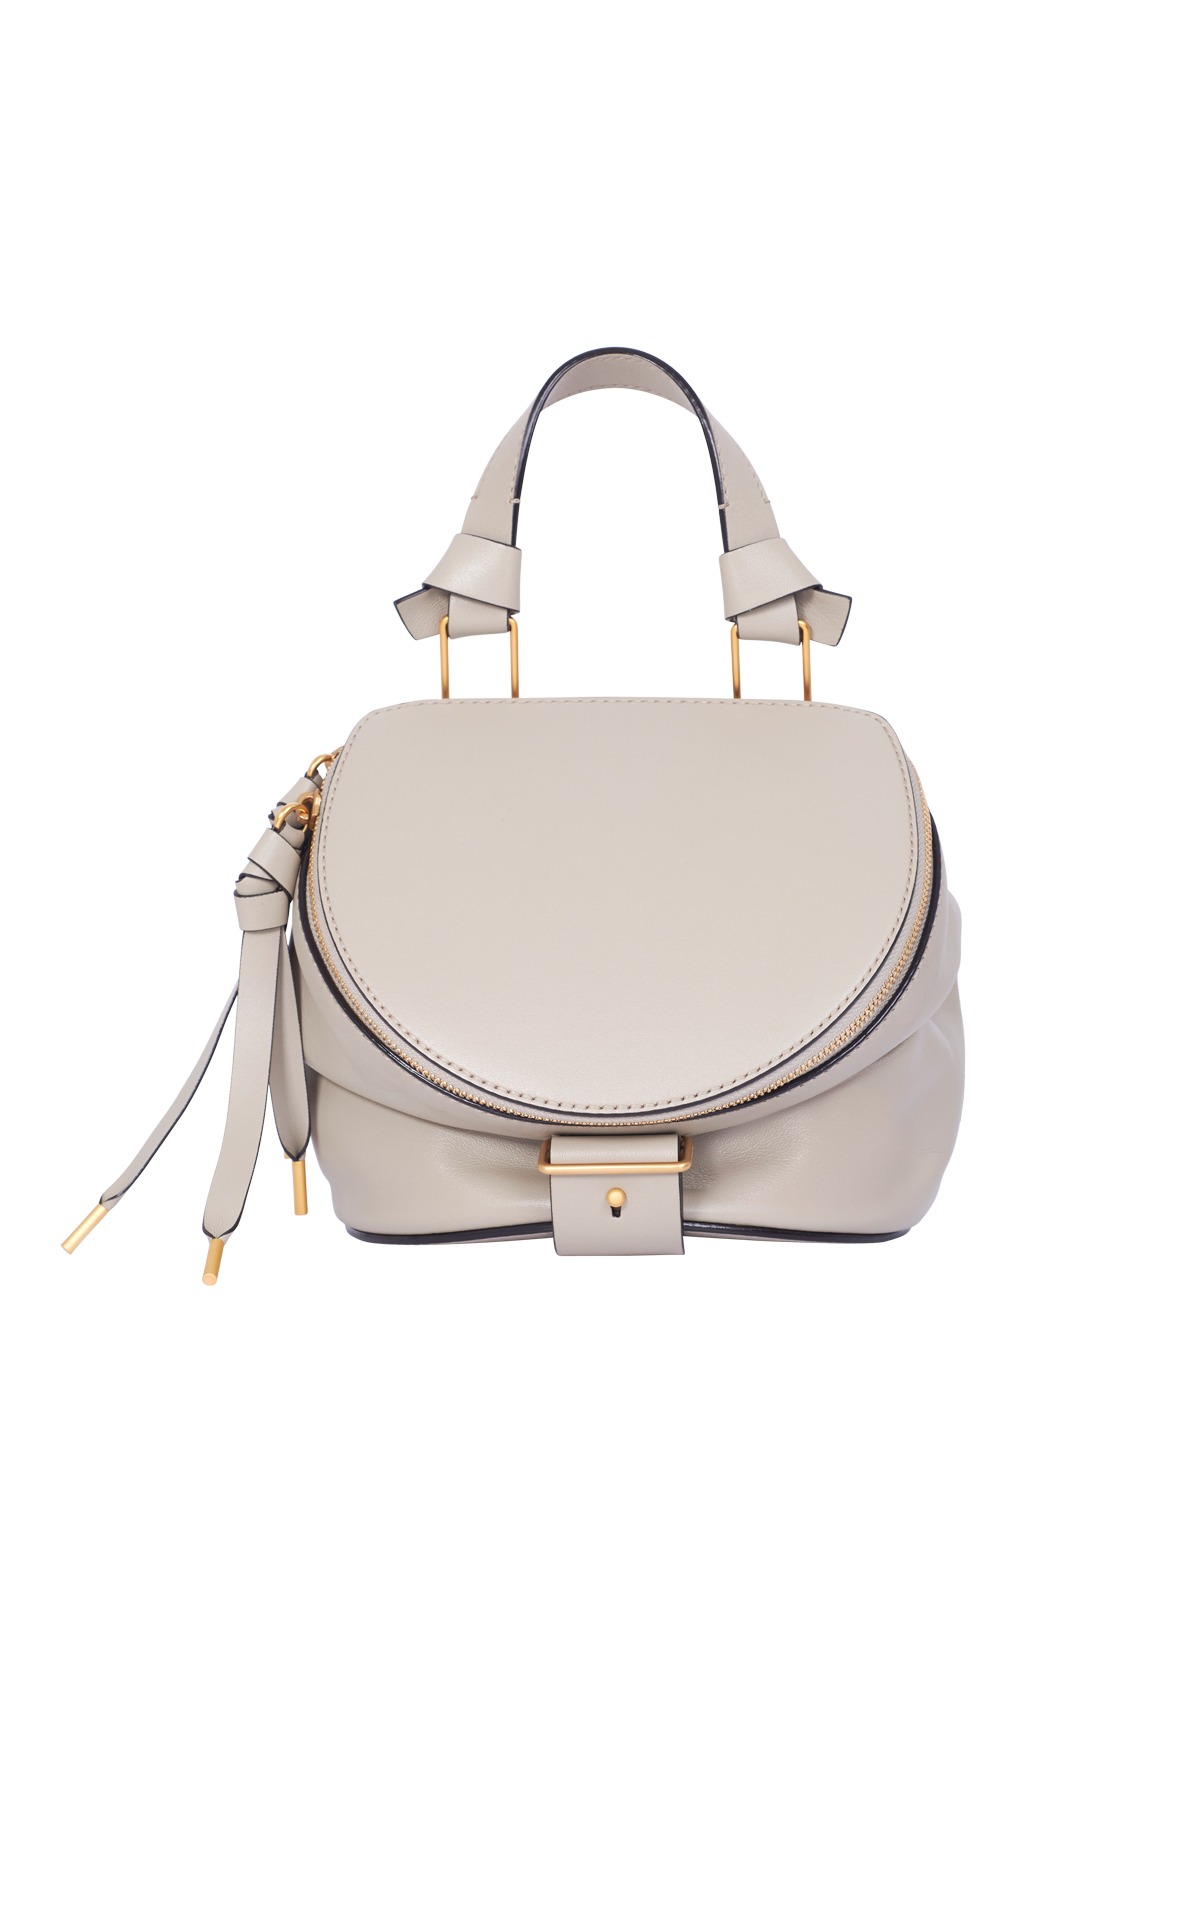 White leather bag Bally